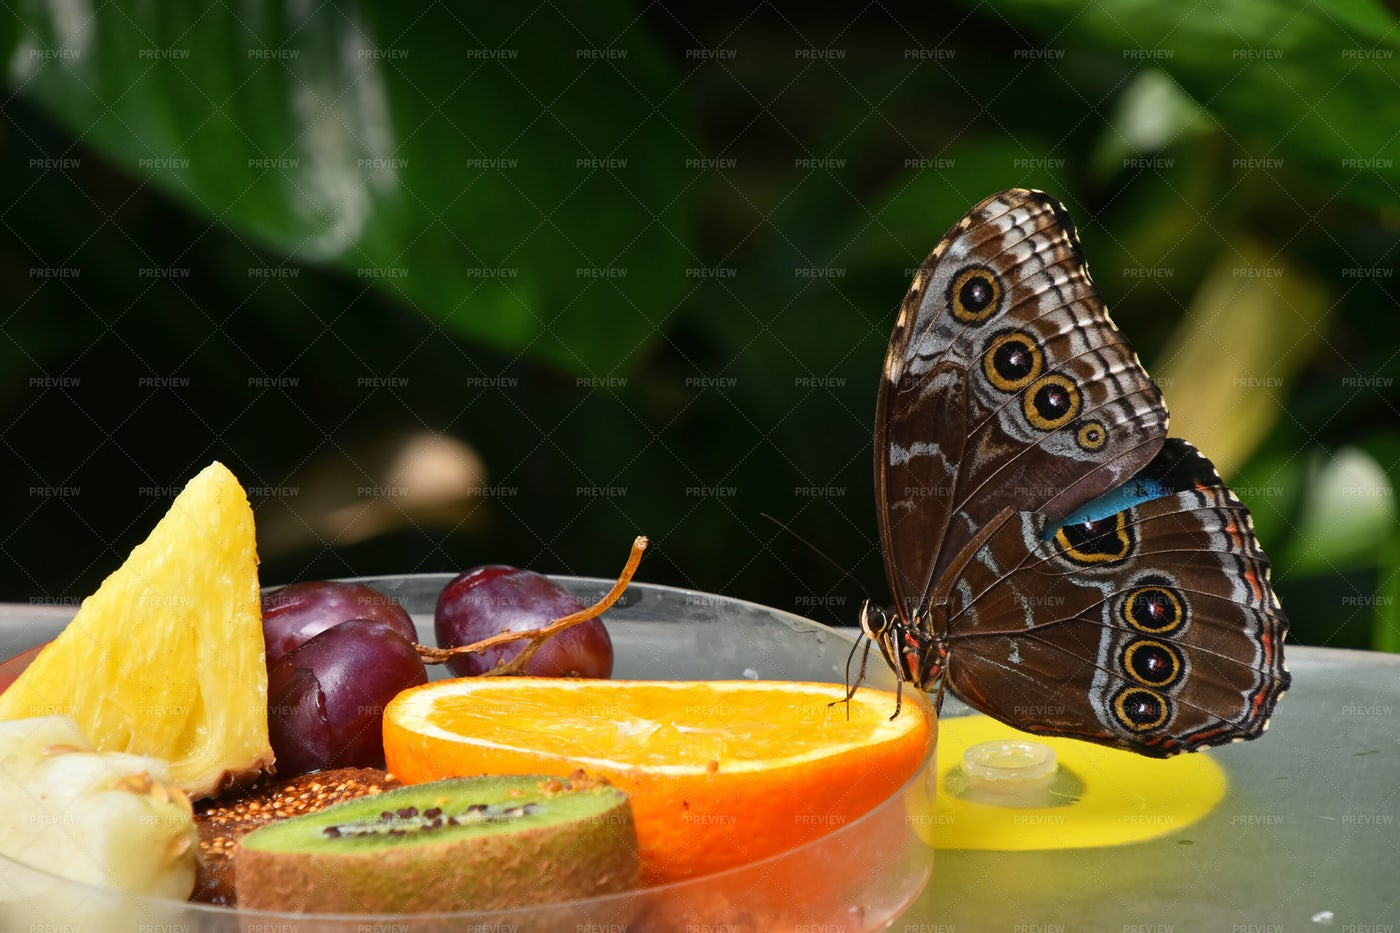 Butterfly Eating Fruits: Stock Photos